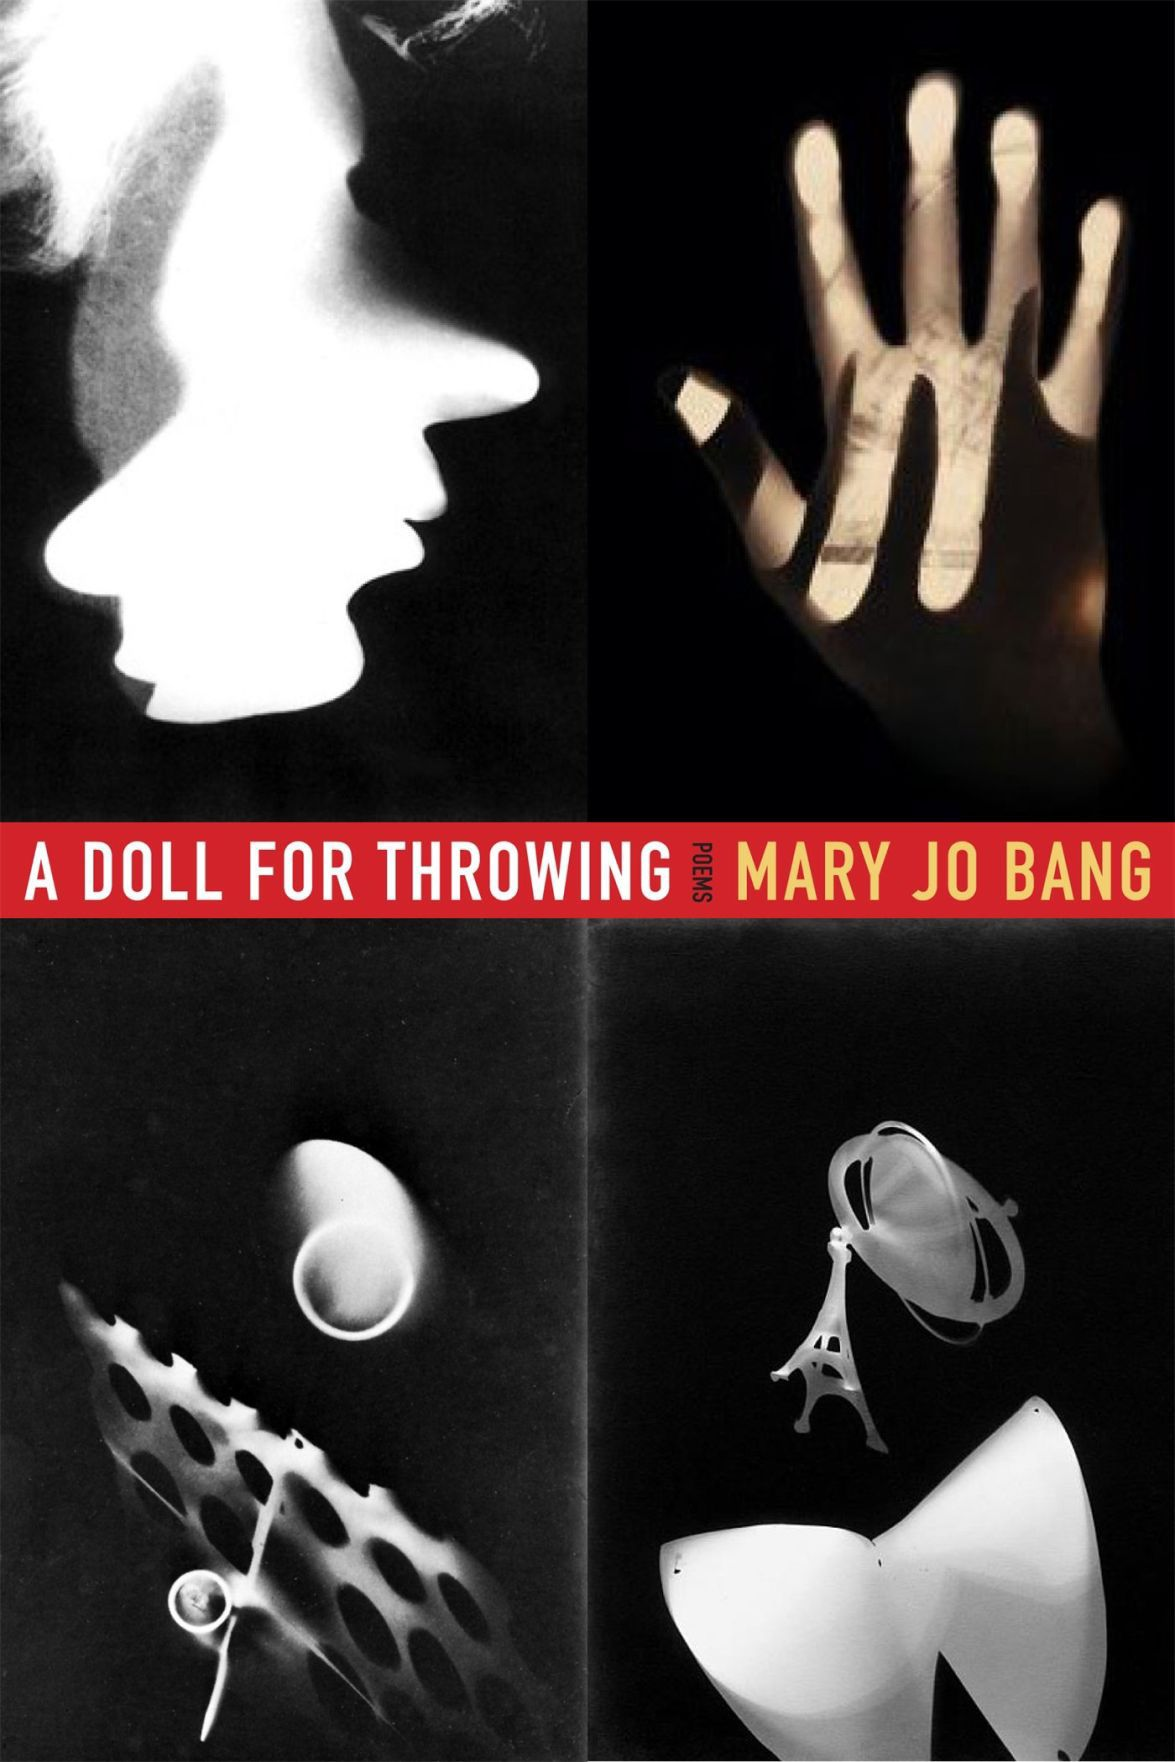 a biography of mary jo bang an american poet Professor of english at washington university, mary jo bang is the author of six books of poems her first book, apology for want (university press of new england, 1997), was awarded the 1996 bakeless prize and the 1998 great lakes colleges association new writers award.